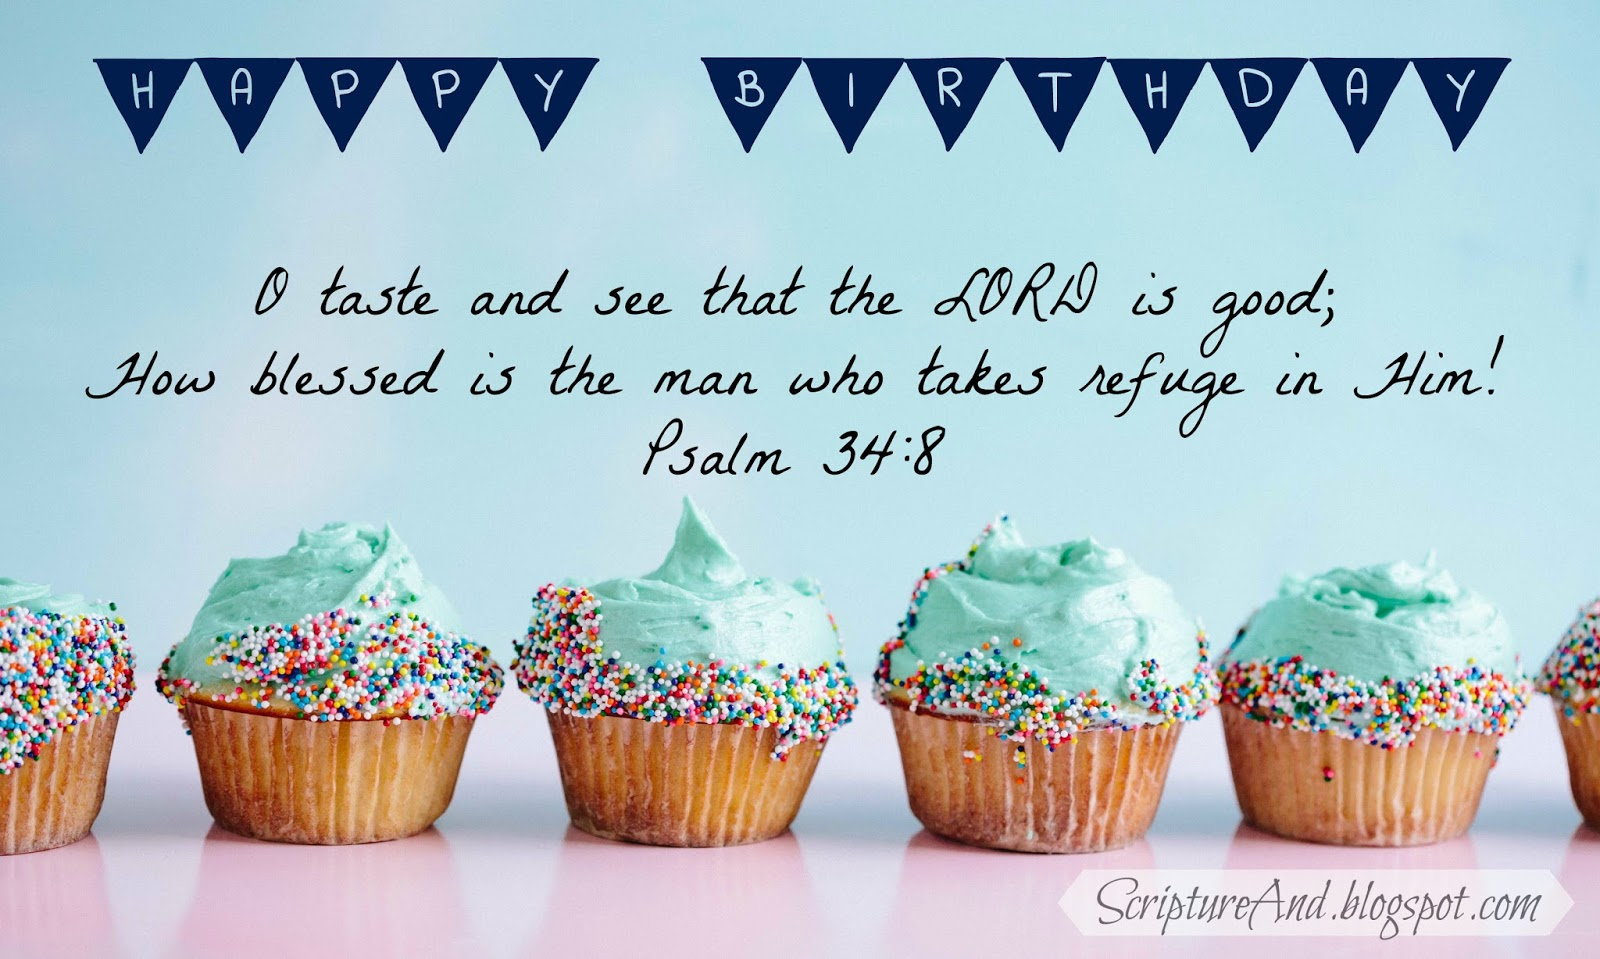 Scripture and free birthday images with bible verses happy birthday image with cupcakes and psalm 348 from scriptureandspot kristyandbryce Images